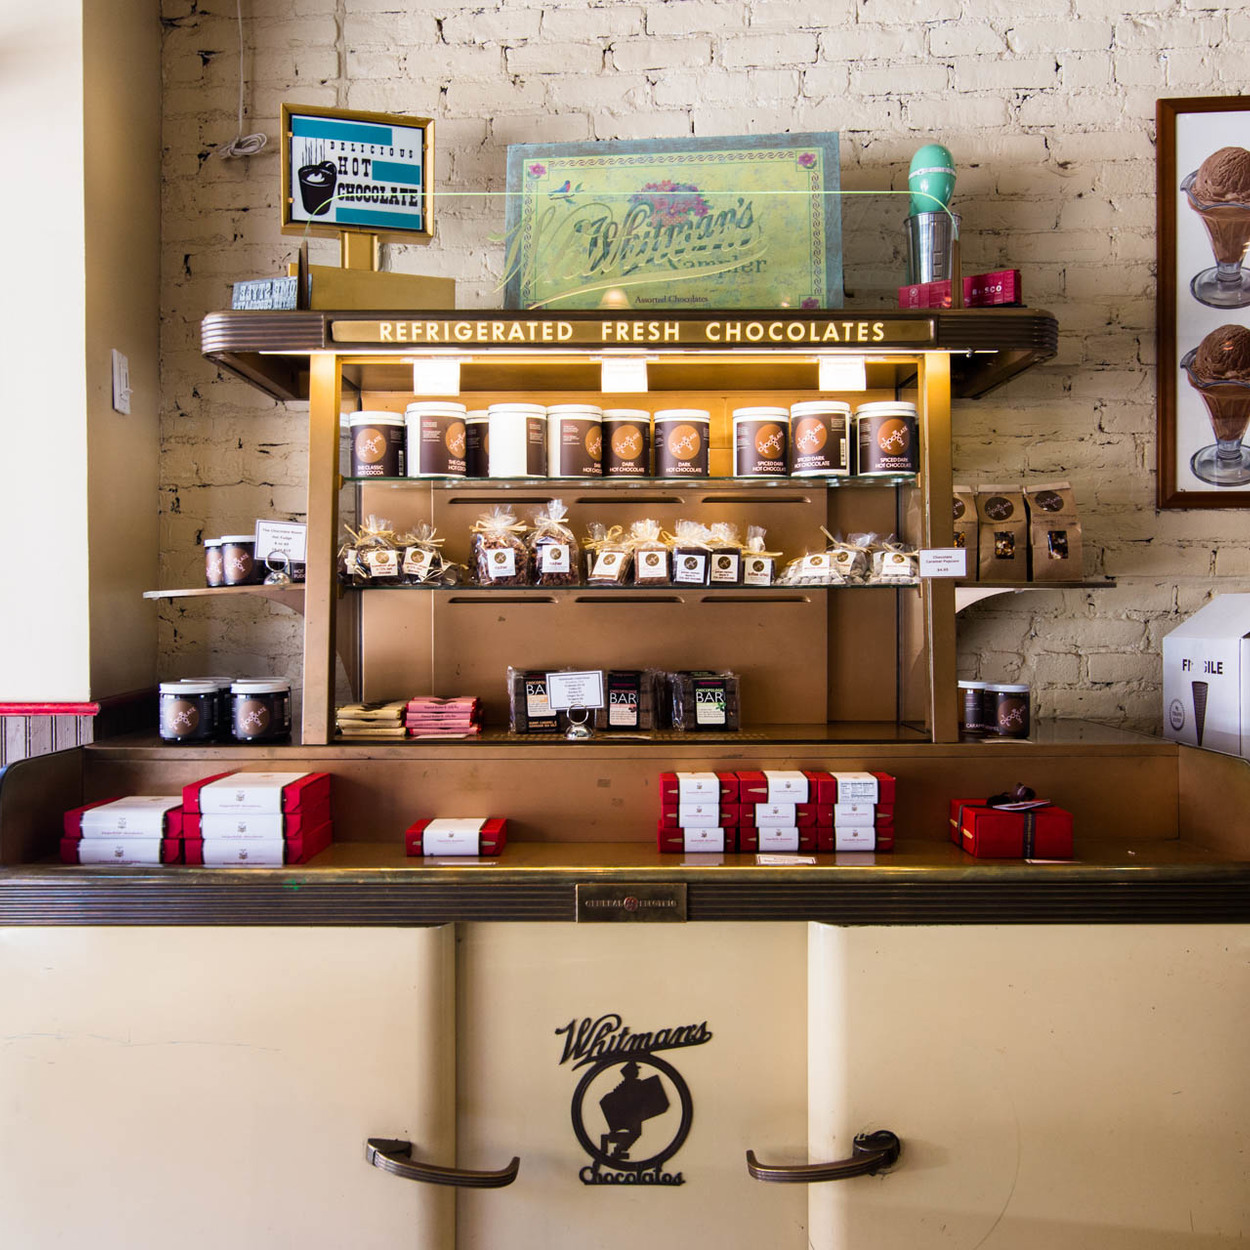 The Chocolate Room in Cobble Hill - Powered by Nooklyn